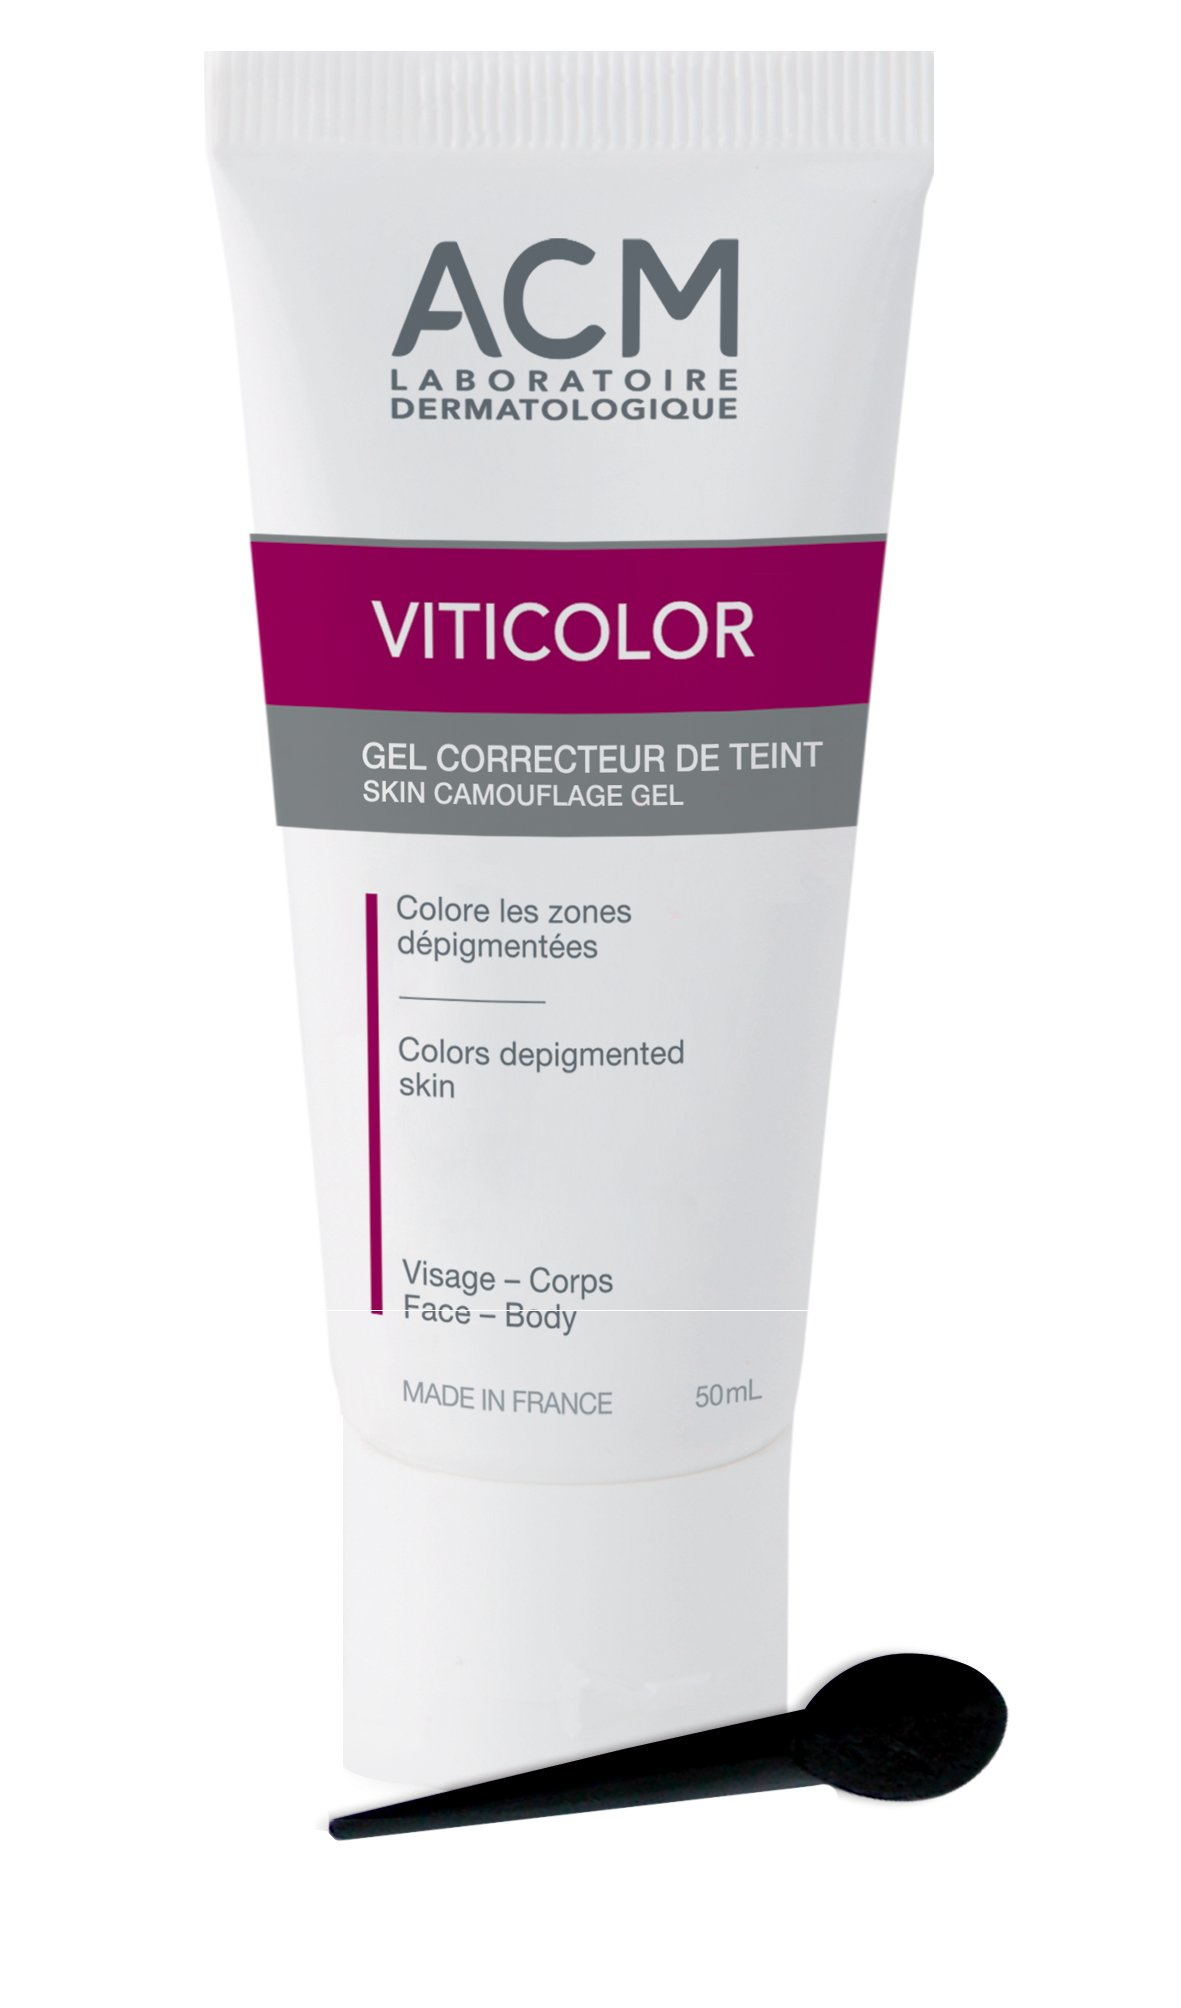 VITICOLOR ACM Laboratoire Dermatologique DURABLE SKIN CAMOUFLAGE GEL (50mL)